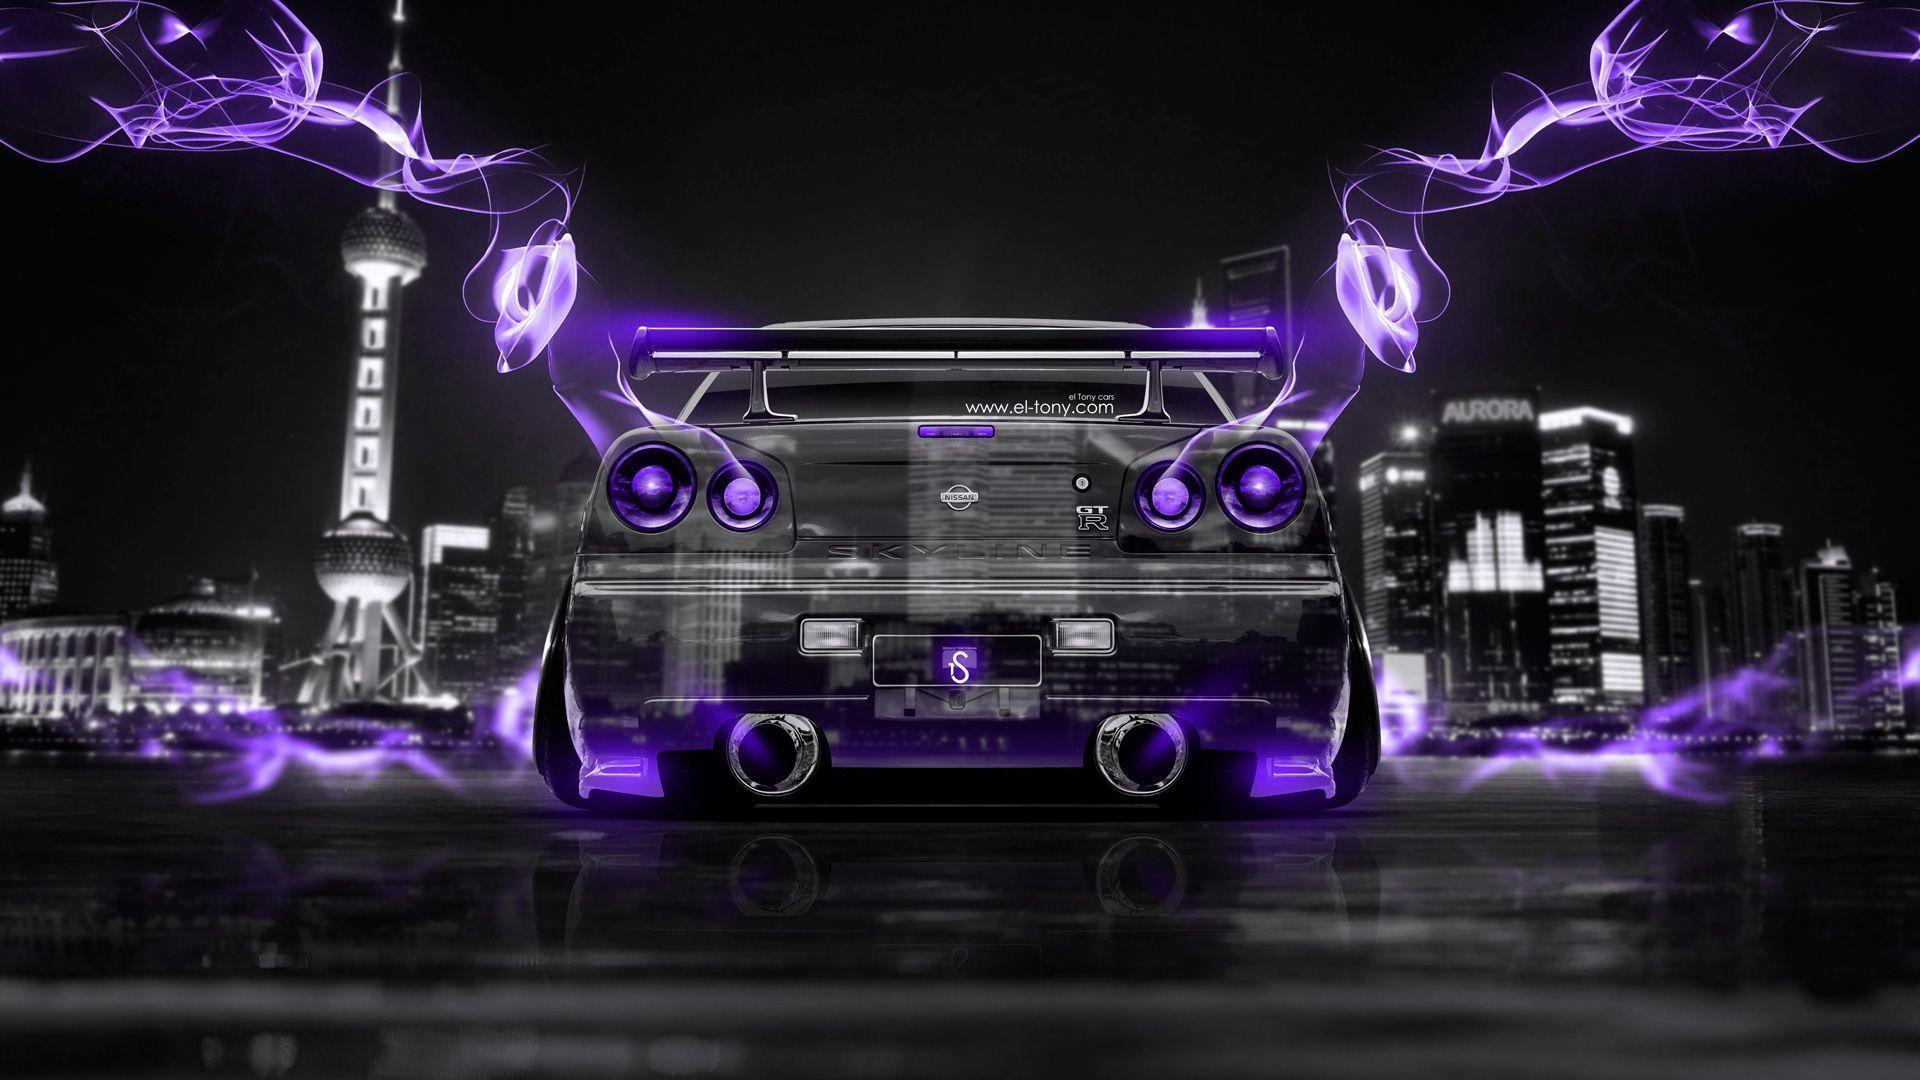 Superb Superieur Nissan Skyline GTR R34 JDM Back Crystal Energy City Car 2014 « El  Tony